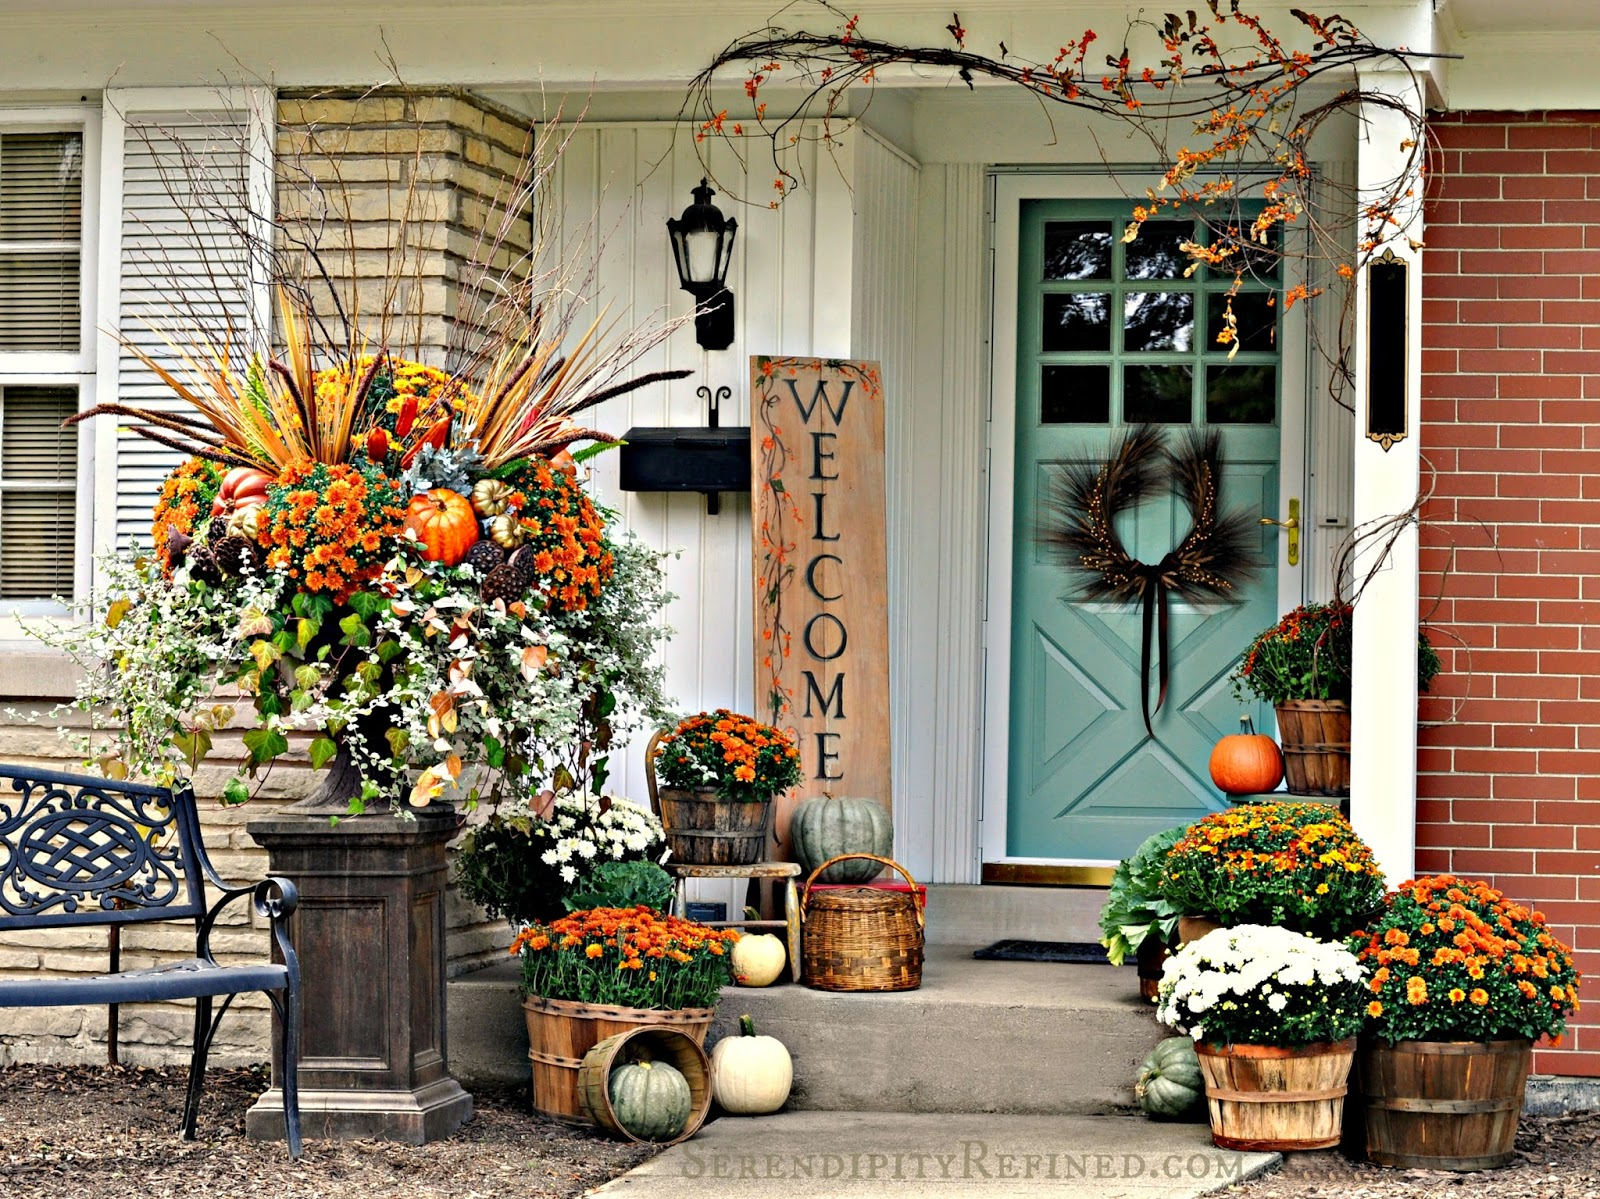 Fabulous outdoor decorating tips and ideas for fall zing Front veranda decorating ideas